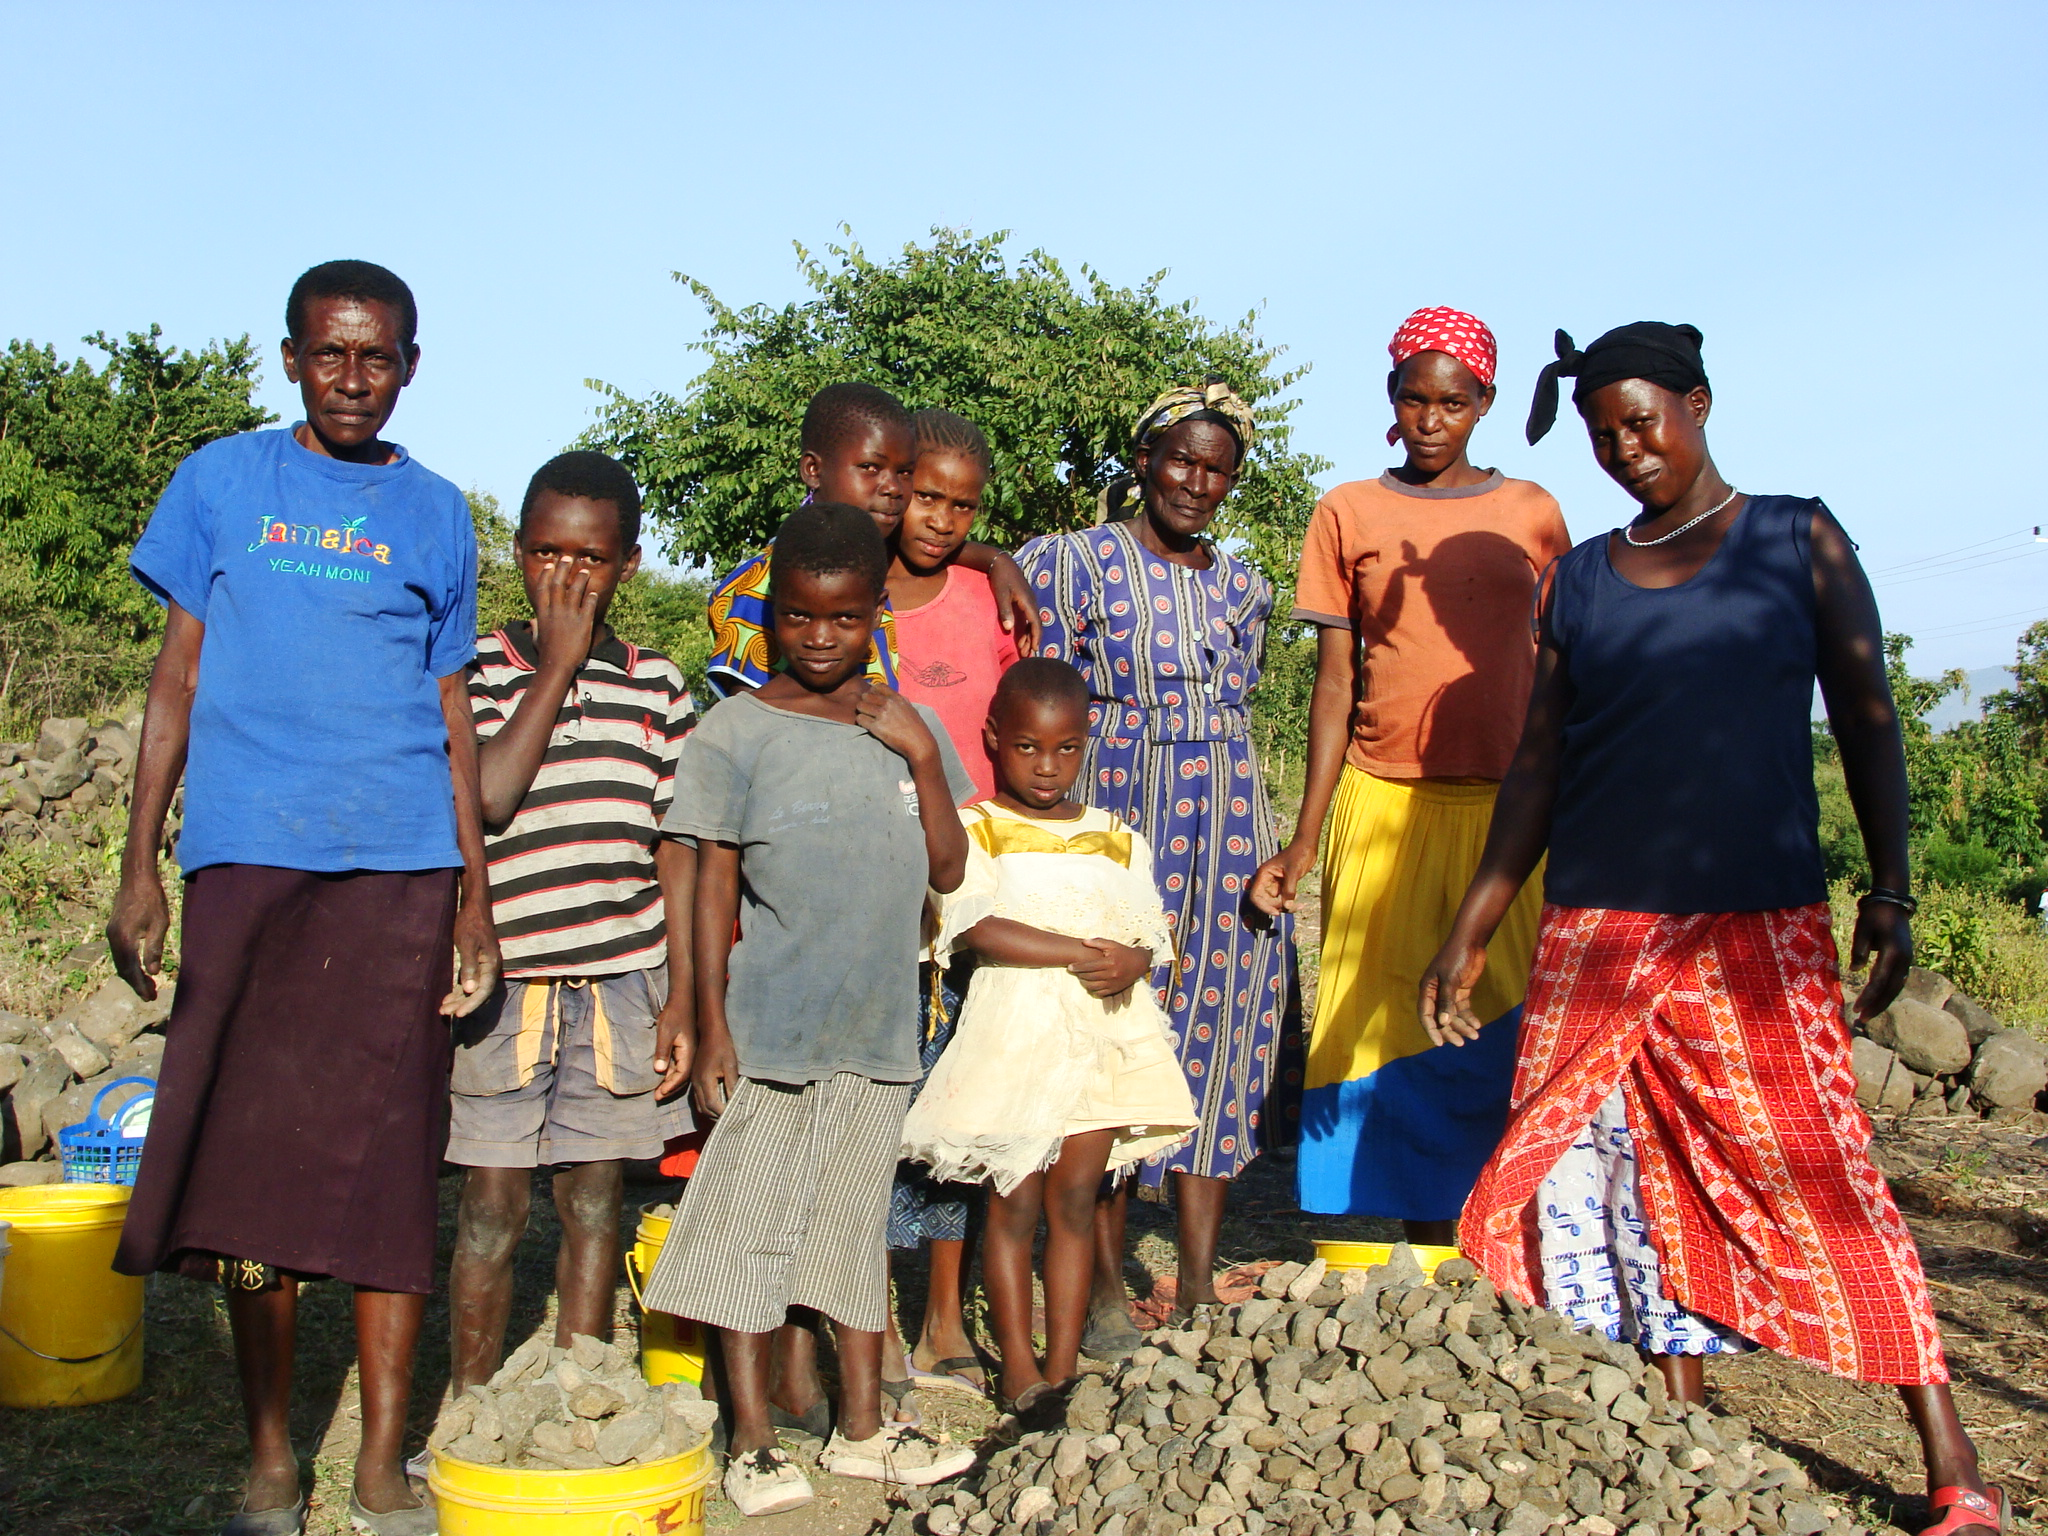 During construction, we purchased ballast and sisal fibers from local families, January 2009.